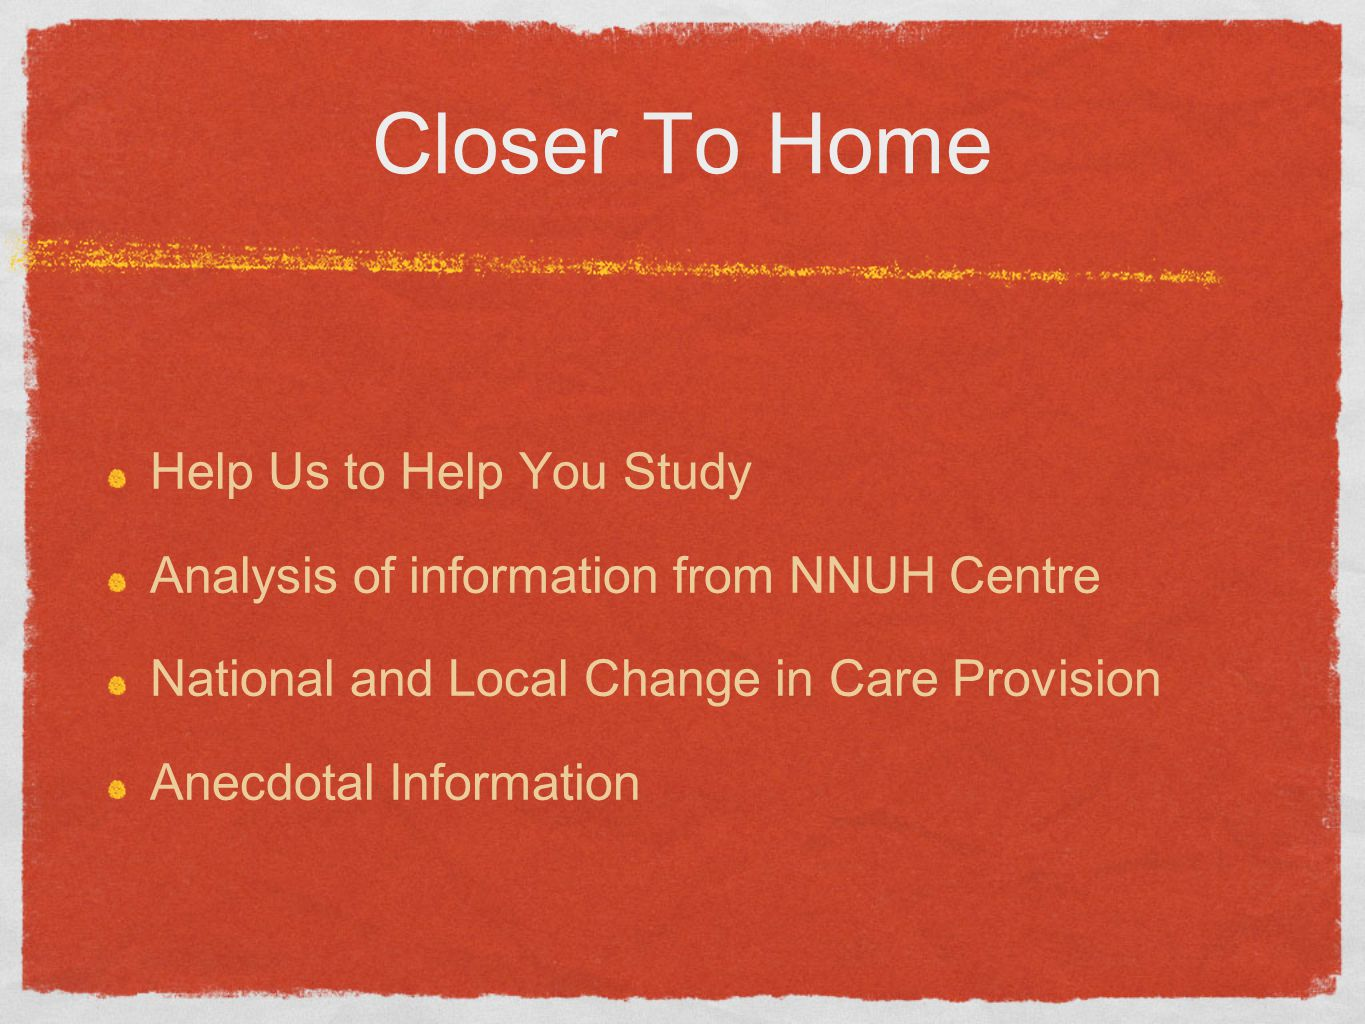 Closer To Home Help Us to Help You Study Analysis of information from NNUH Centre National and Local Change in Care Provision Anecdotal Information